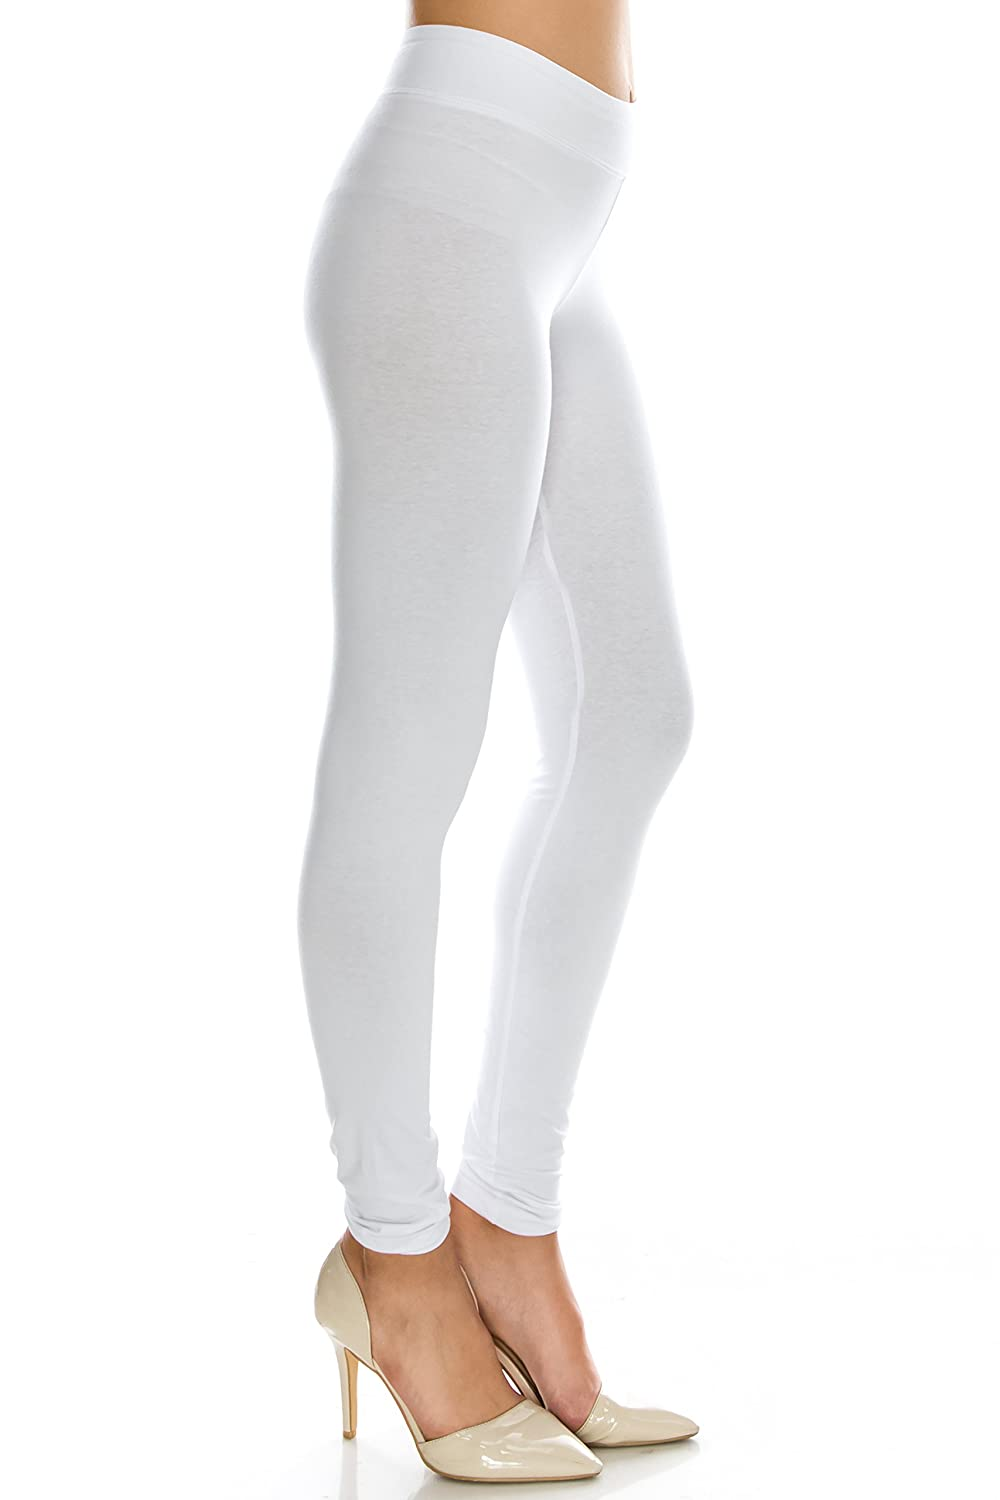 Full White Small EttelLut Cotton Spandex Basic Leggings PantsJersey Full Capri Regular Plus Size